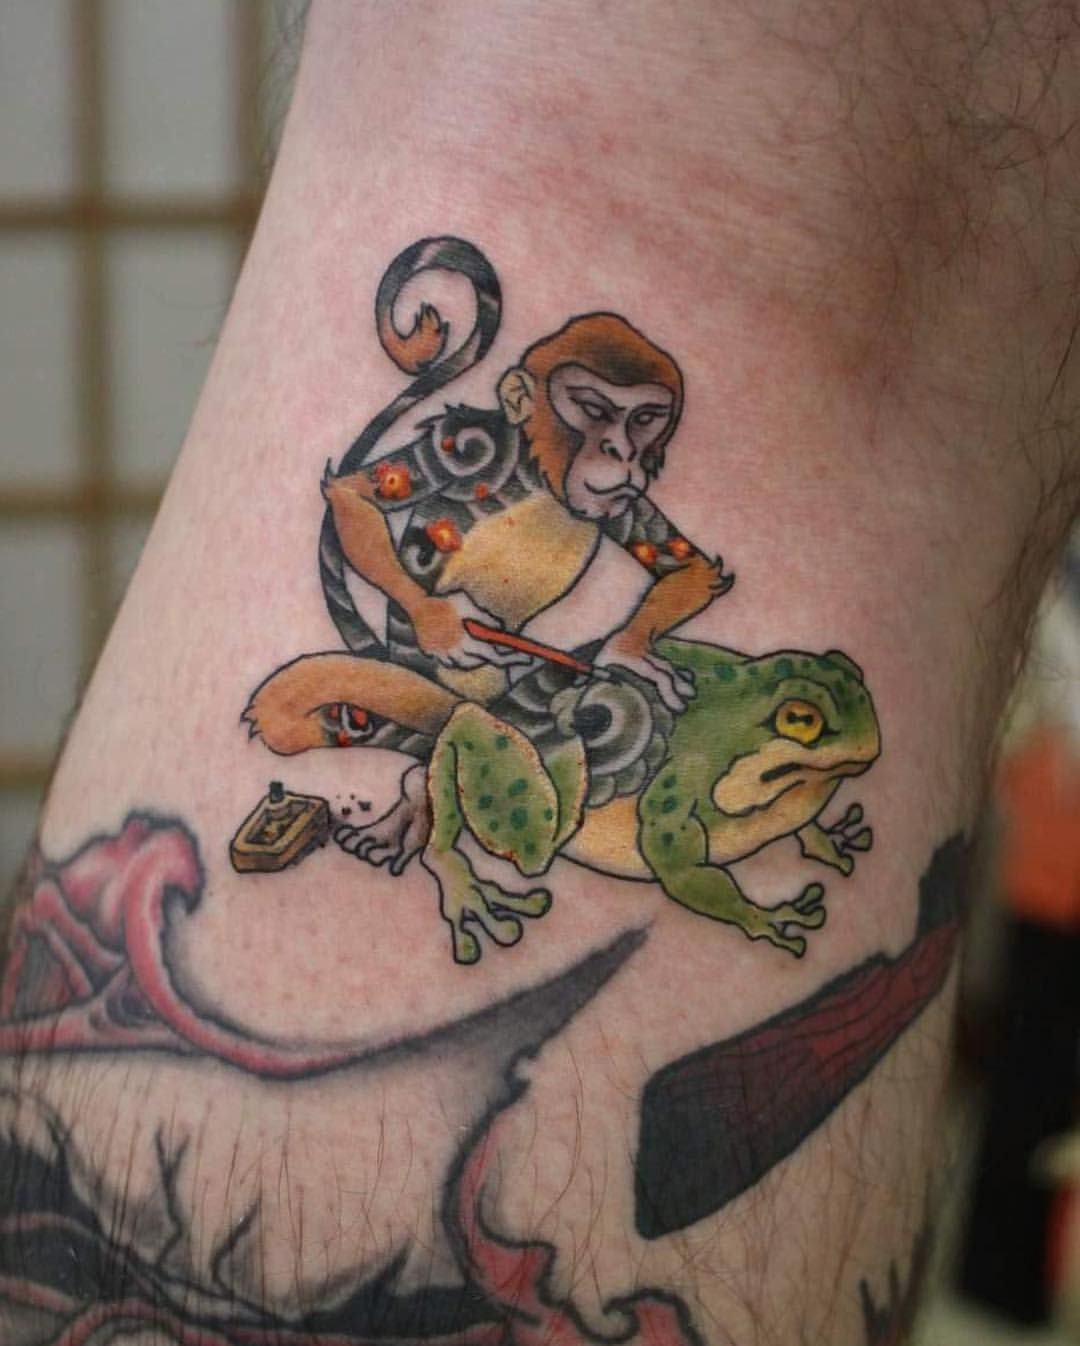 Monkey tattooing a frog — tattoo inspired by Horitomo's